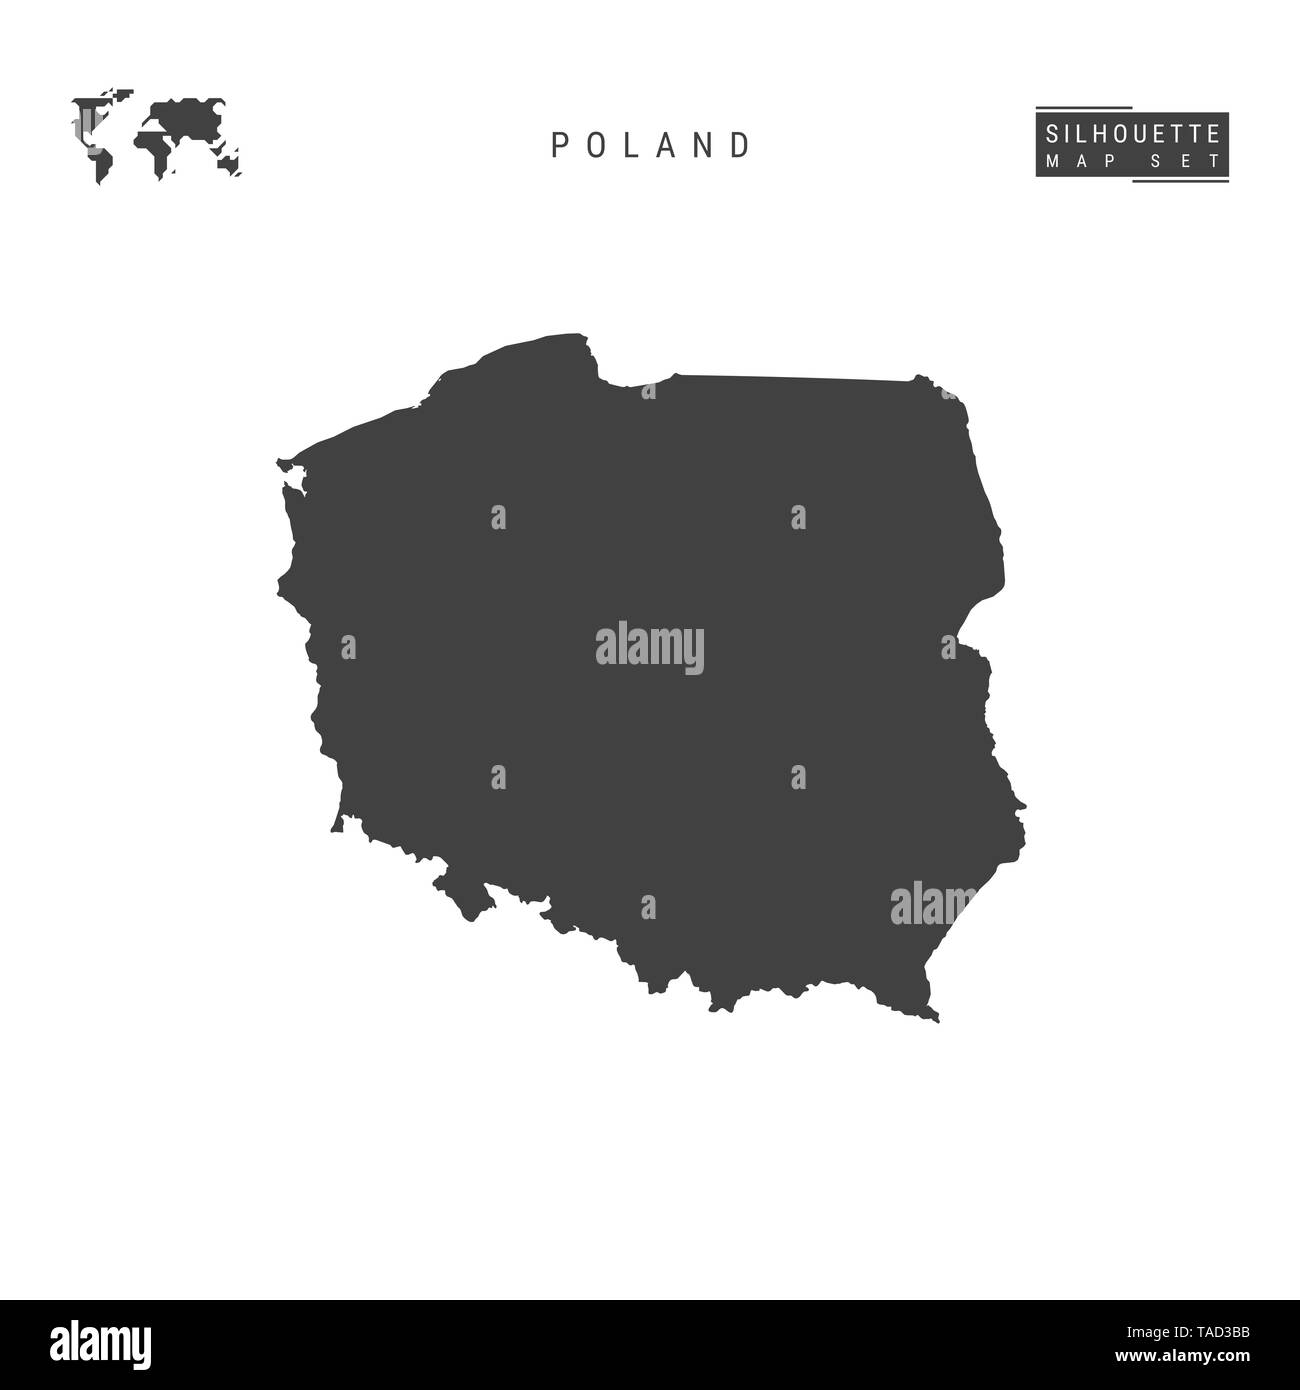 Picture of: Poland Blank Map Isolated On White Background High Detailed Black Silhouette Map Of Poland Stock Photo Alamy